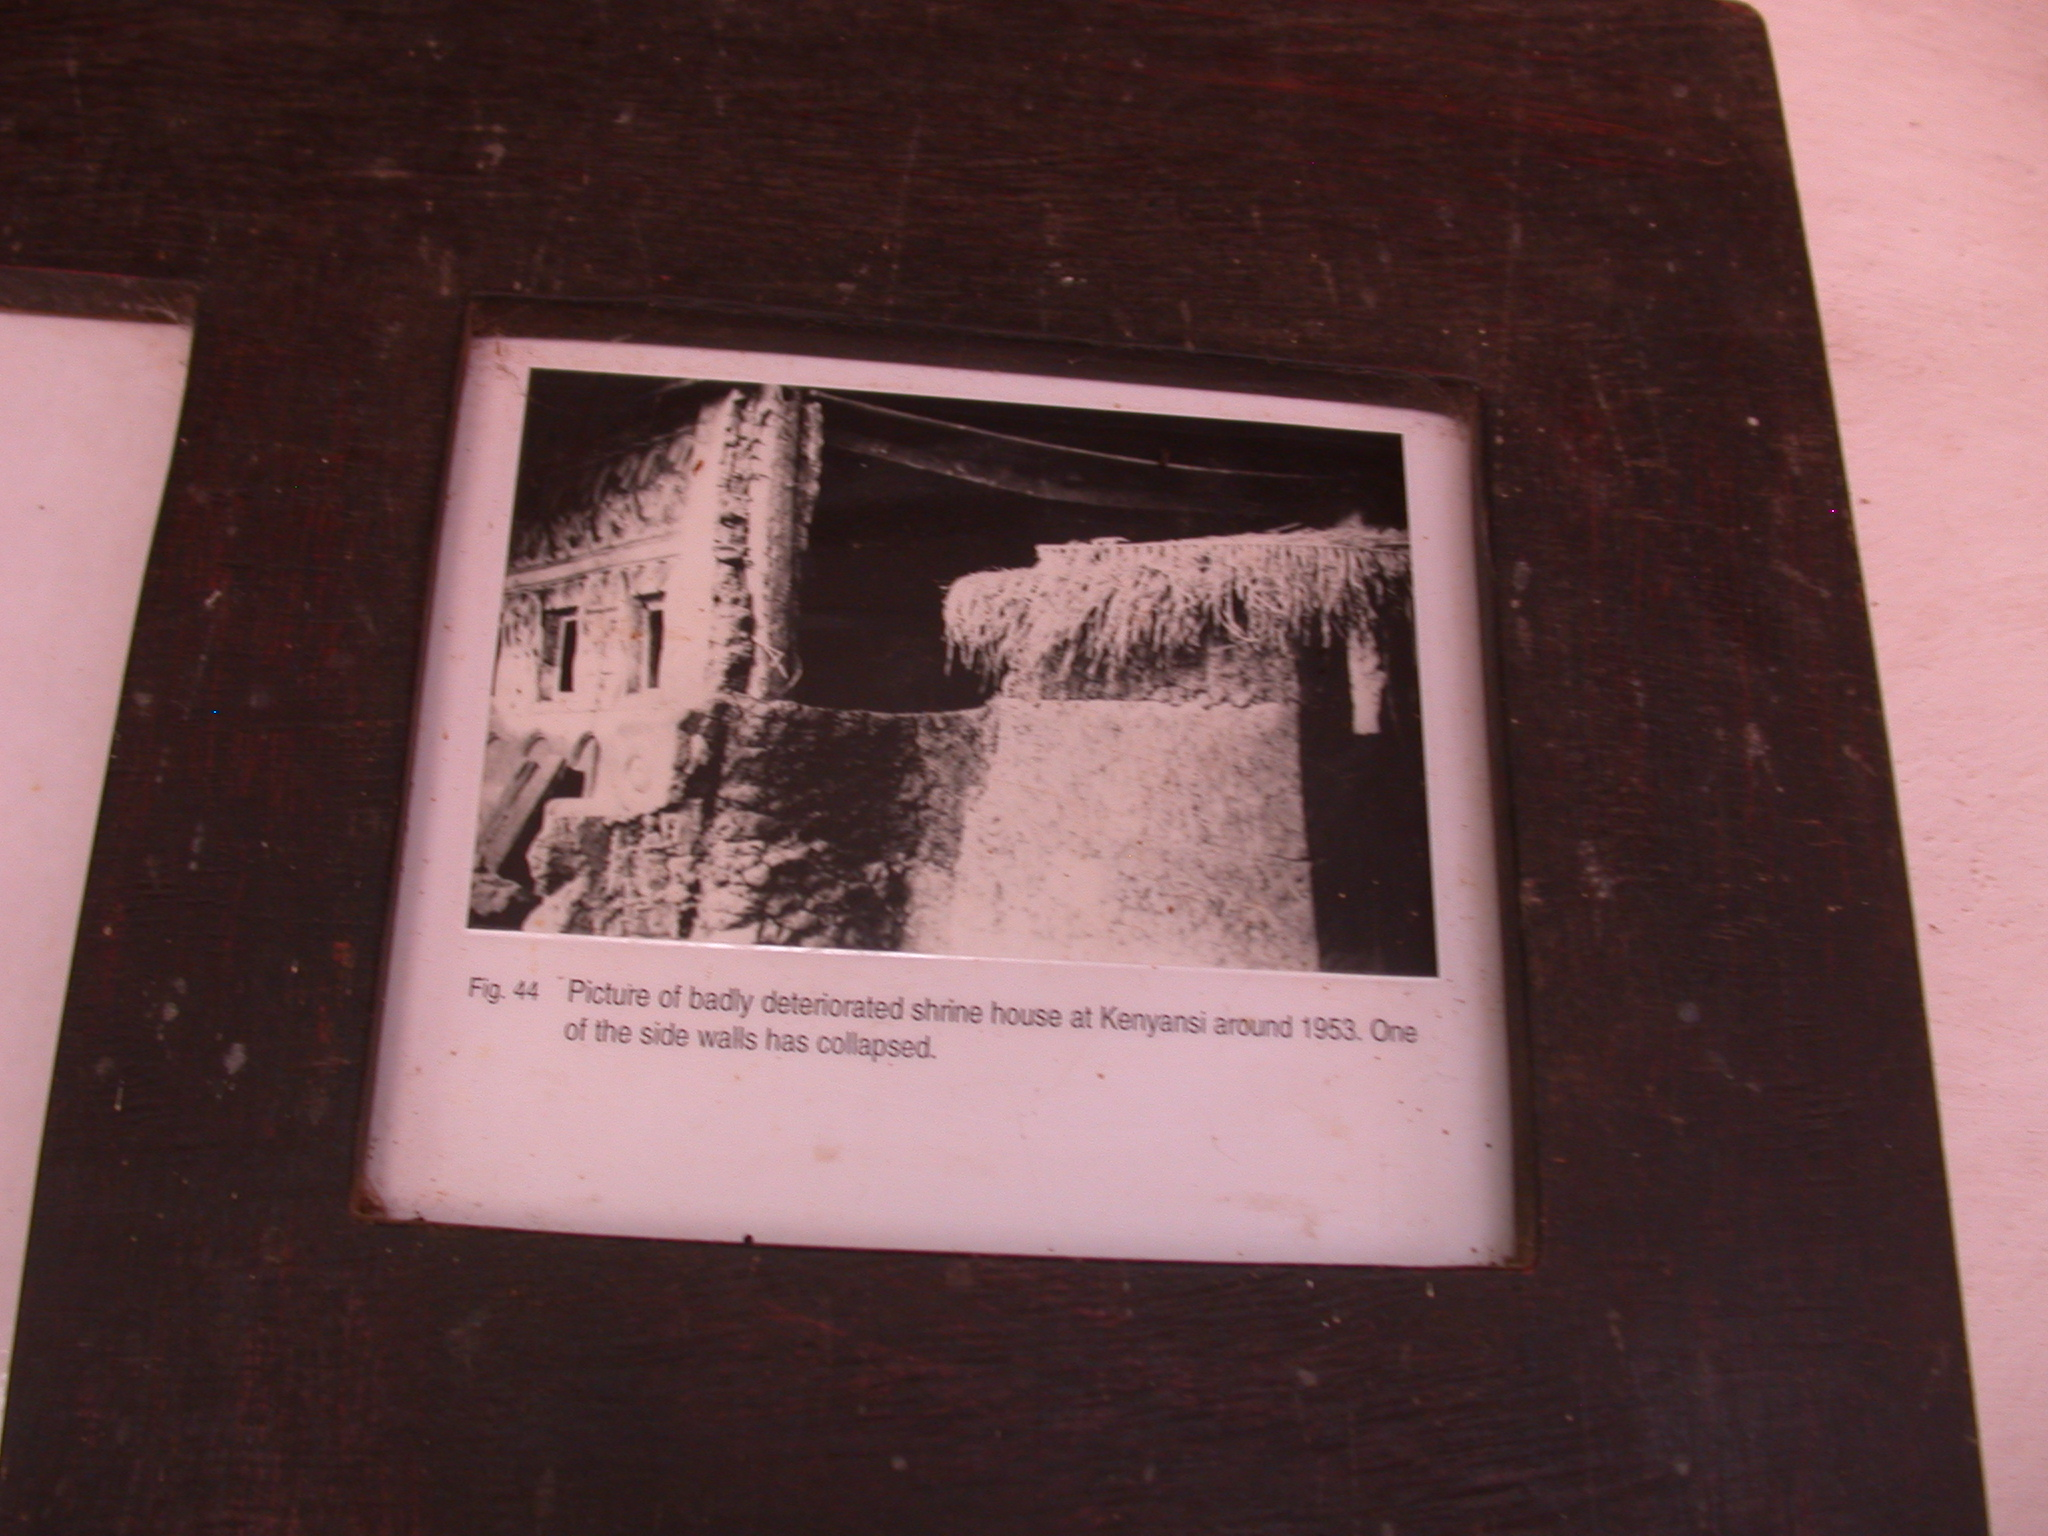 Photograph of Deteriorated Kenyansi Shrine Around 1953, Asante Traditional Shrine at Ejisu-Besease, Ghana